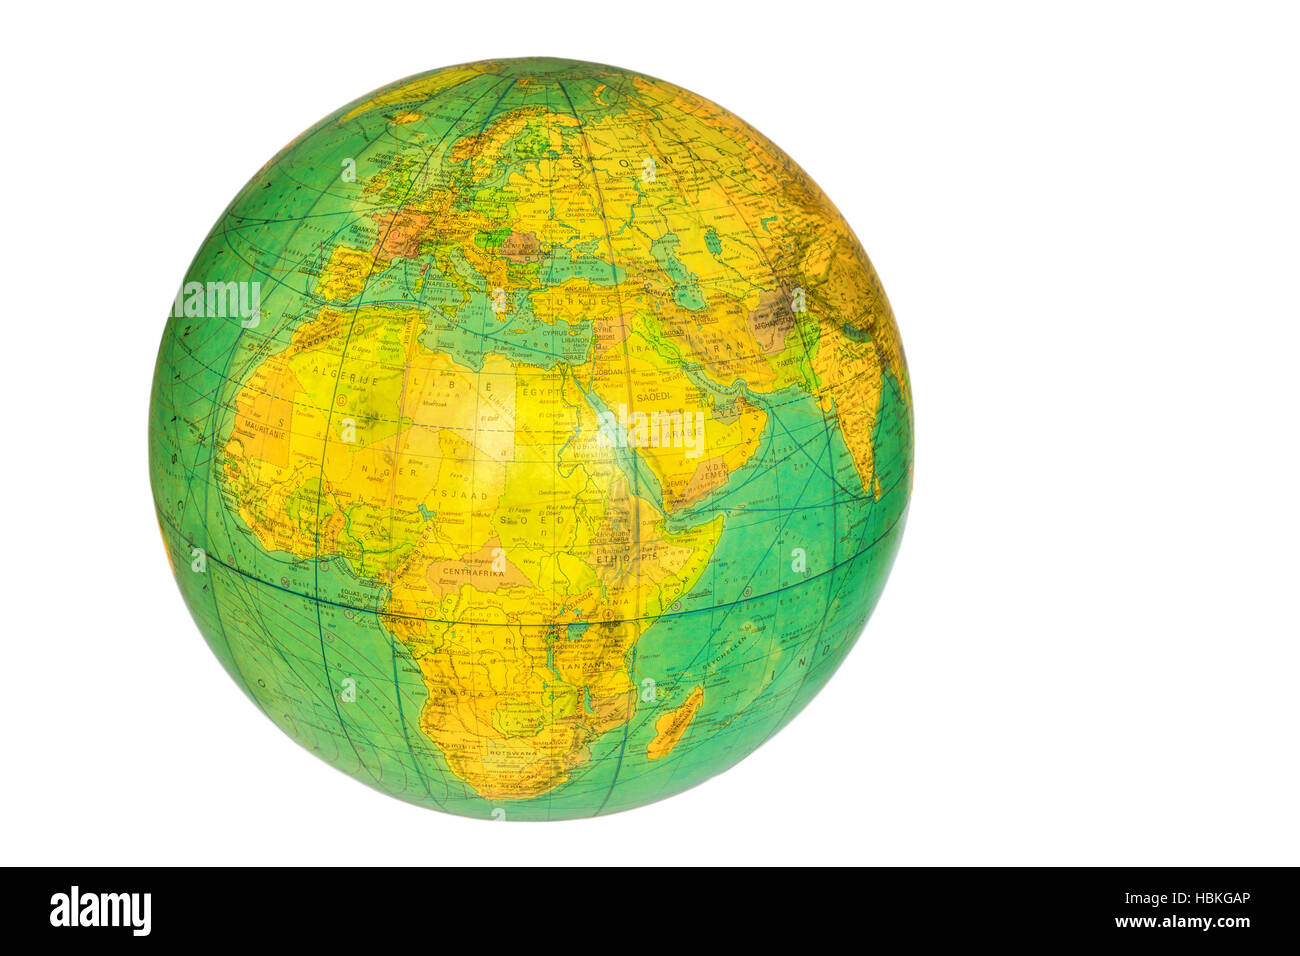 Globe With Planet Earth Isolated On White   Stock Image